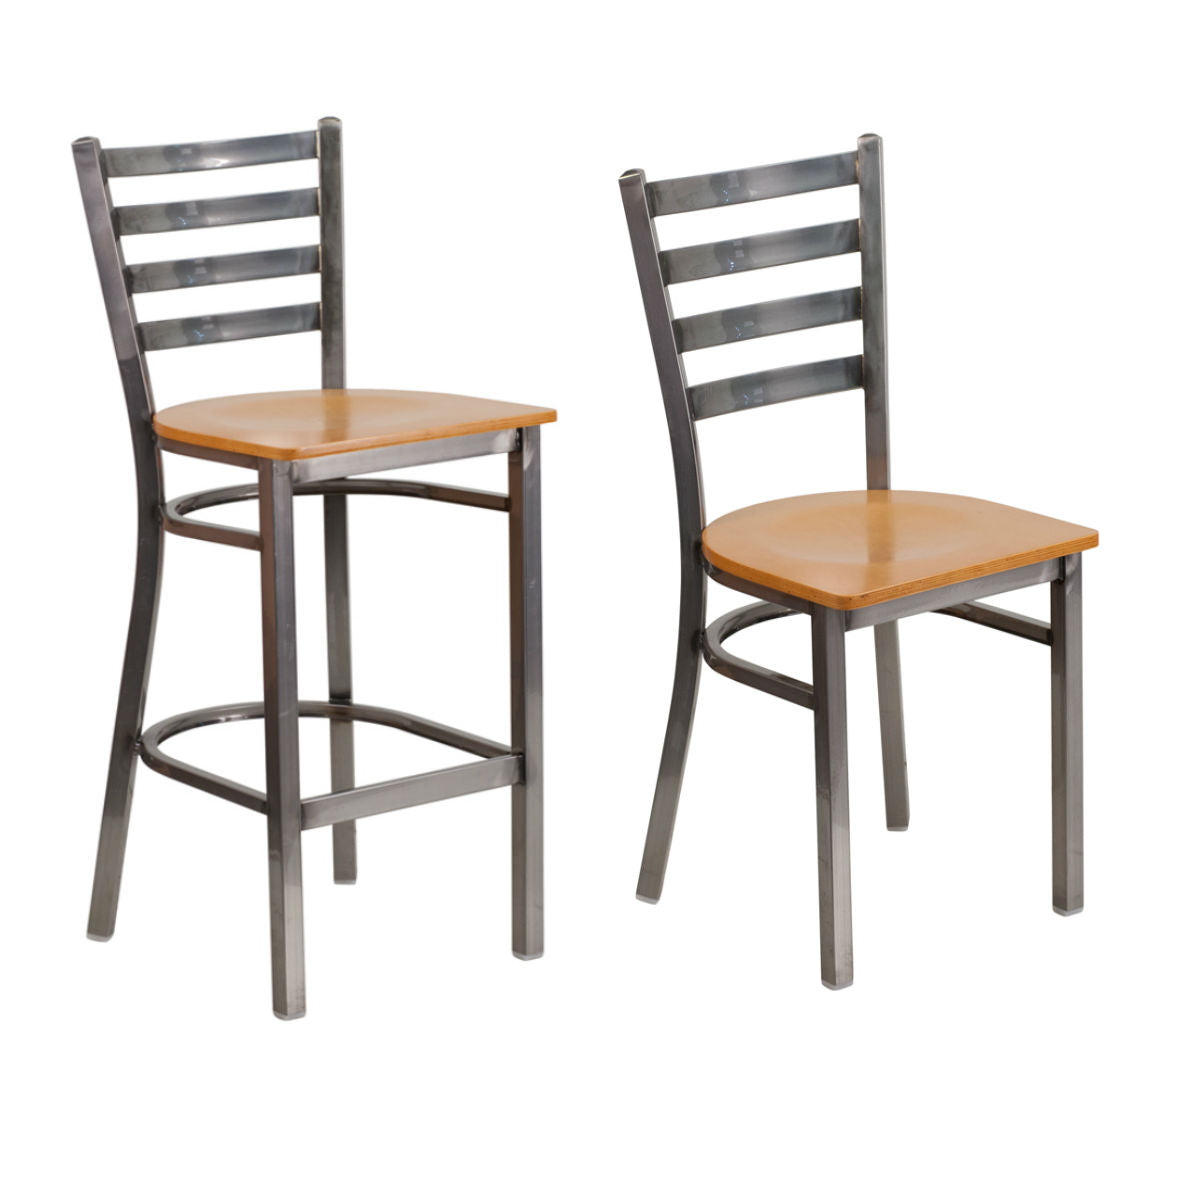 Flash Furniture HERCULES Series Clear Coated Ladder Back Metal Restaurant Chair and Barstool - Natural Wood Seat